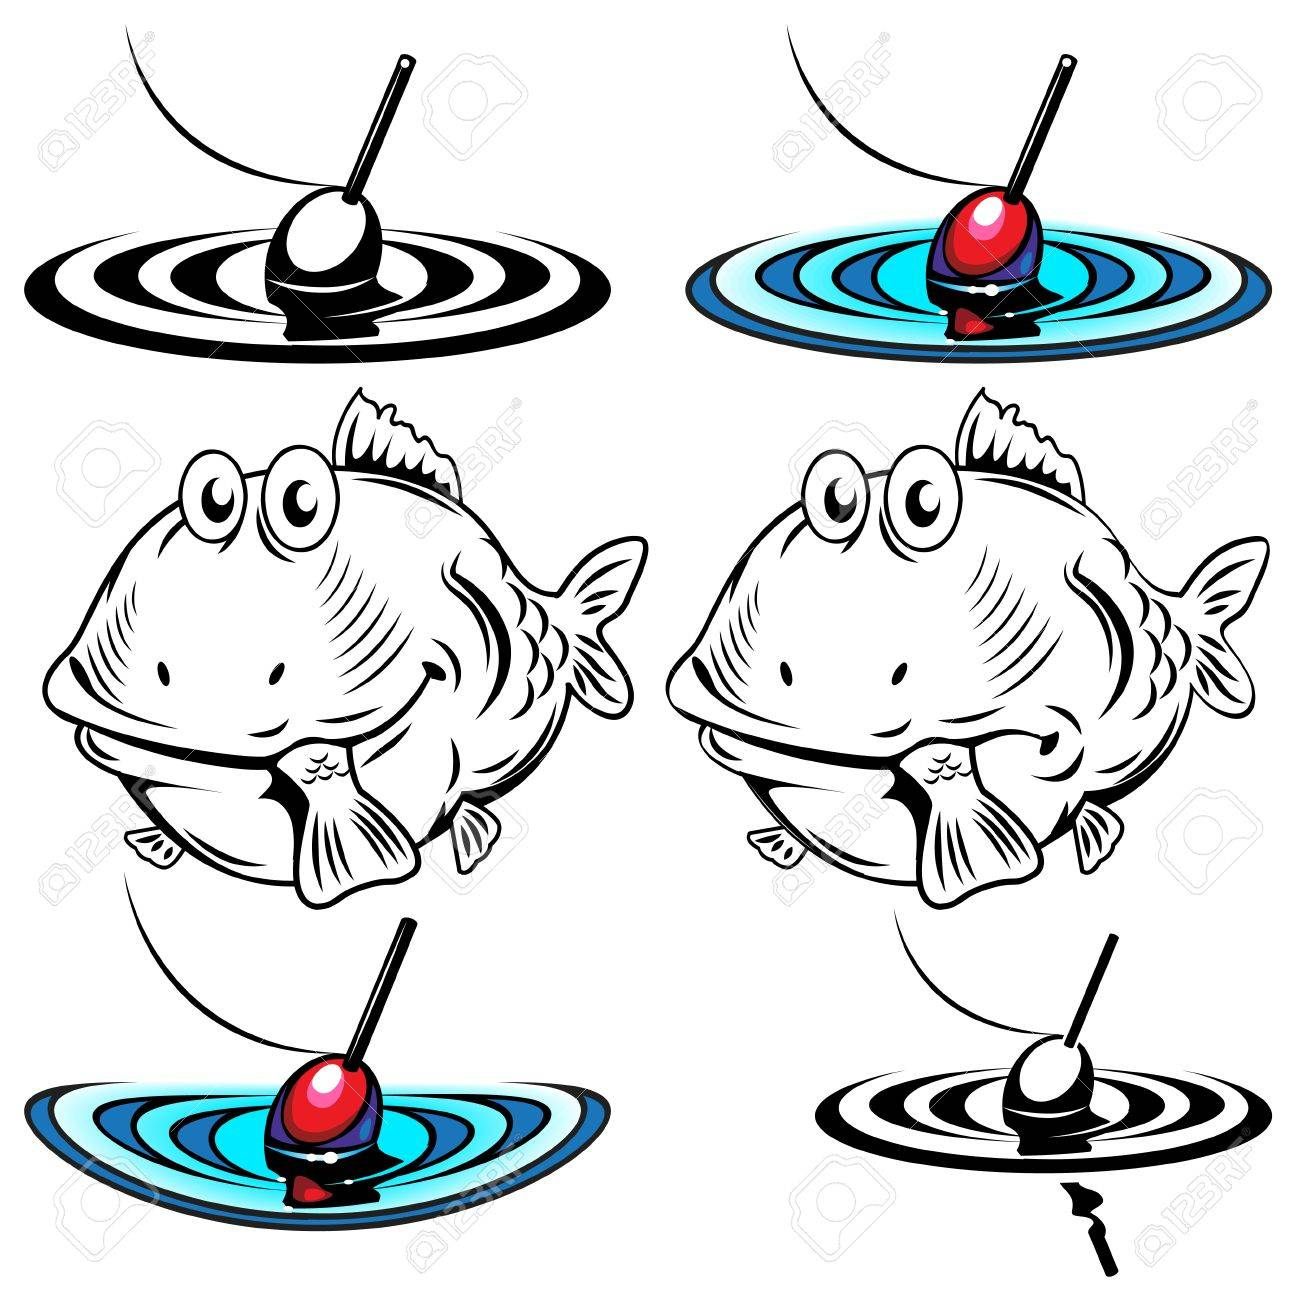 Illustrations of the two fish and floats Stock Vector - 13966572